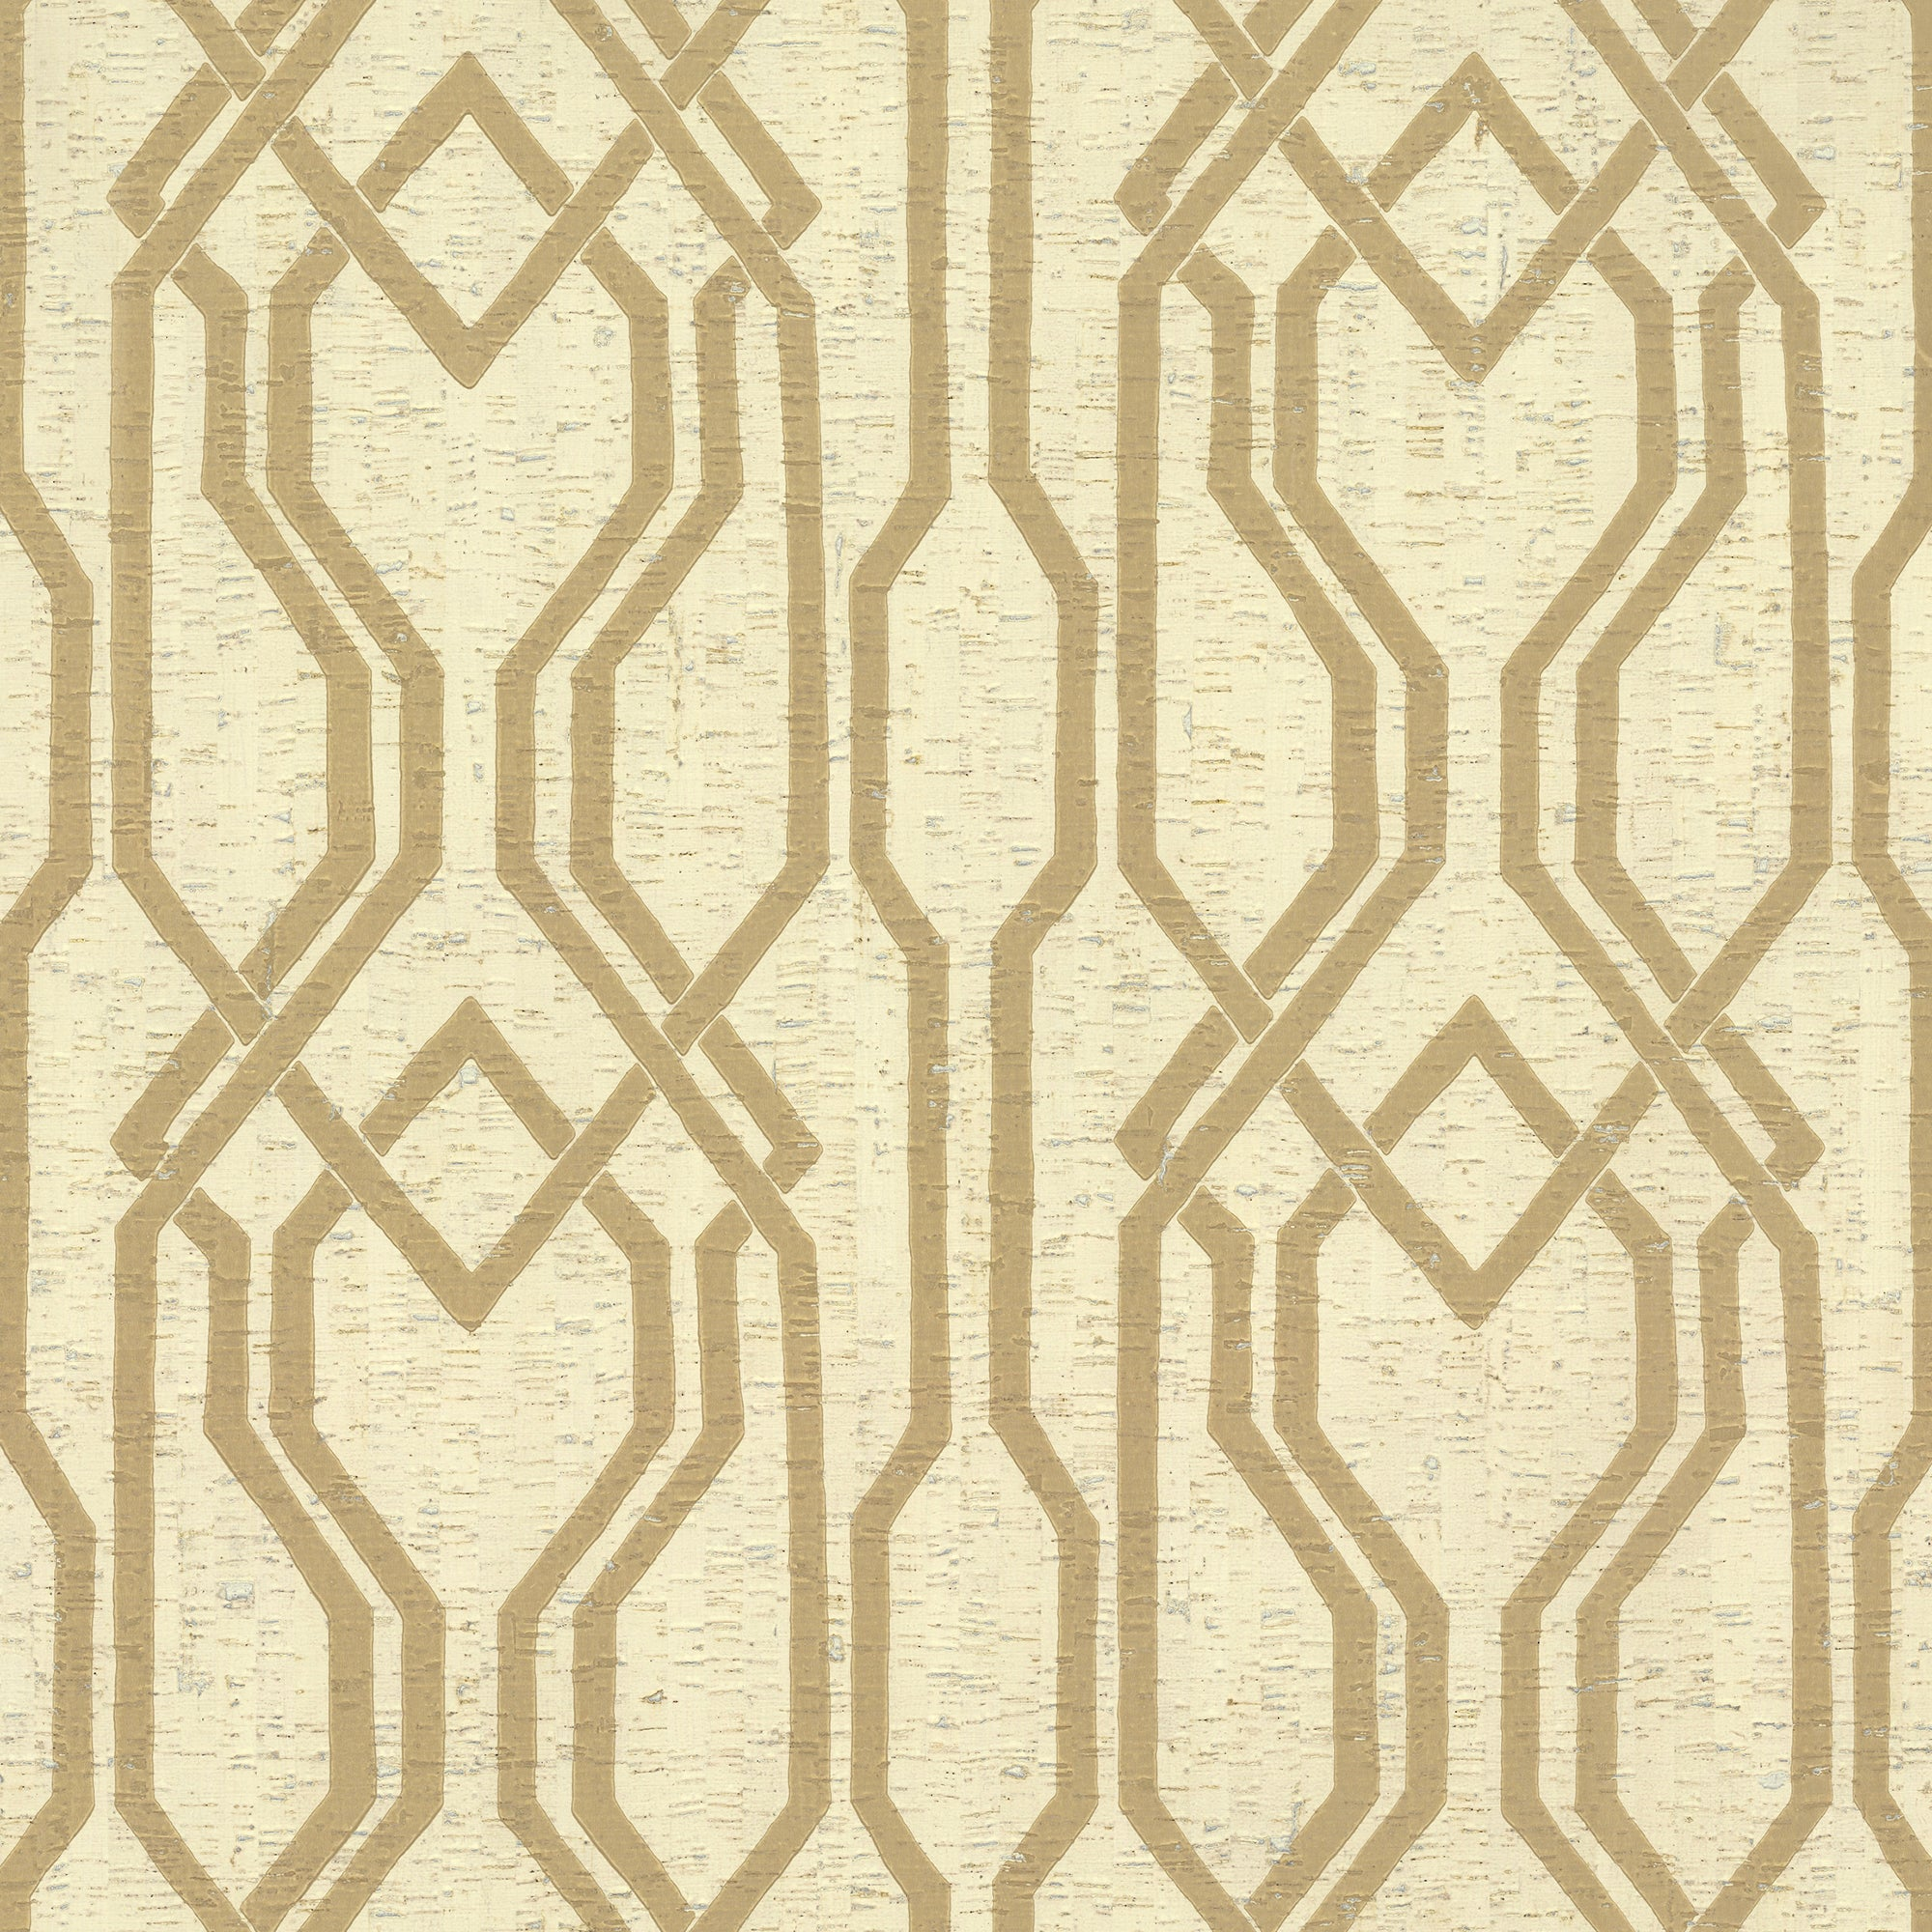 Organic Cork Prints Balanced Trellis Wallpaper